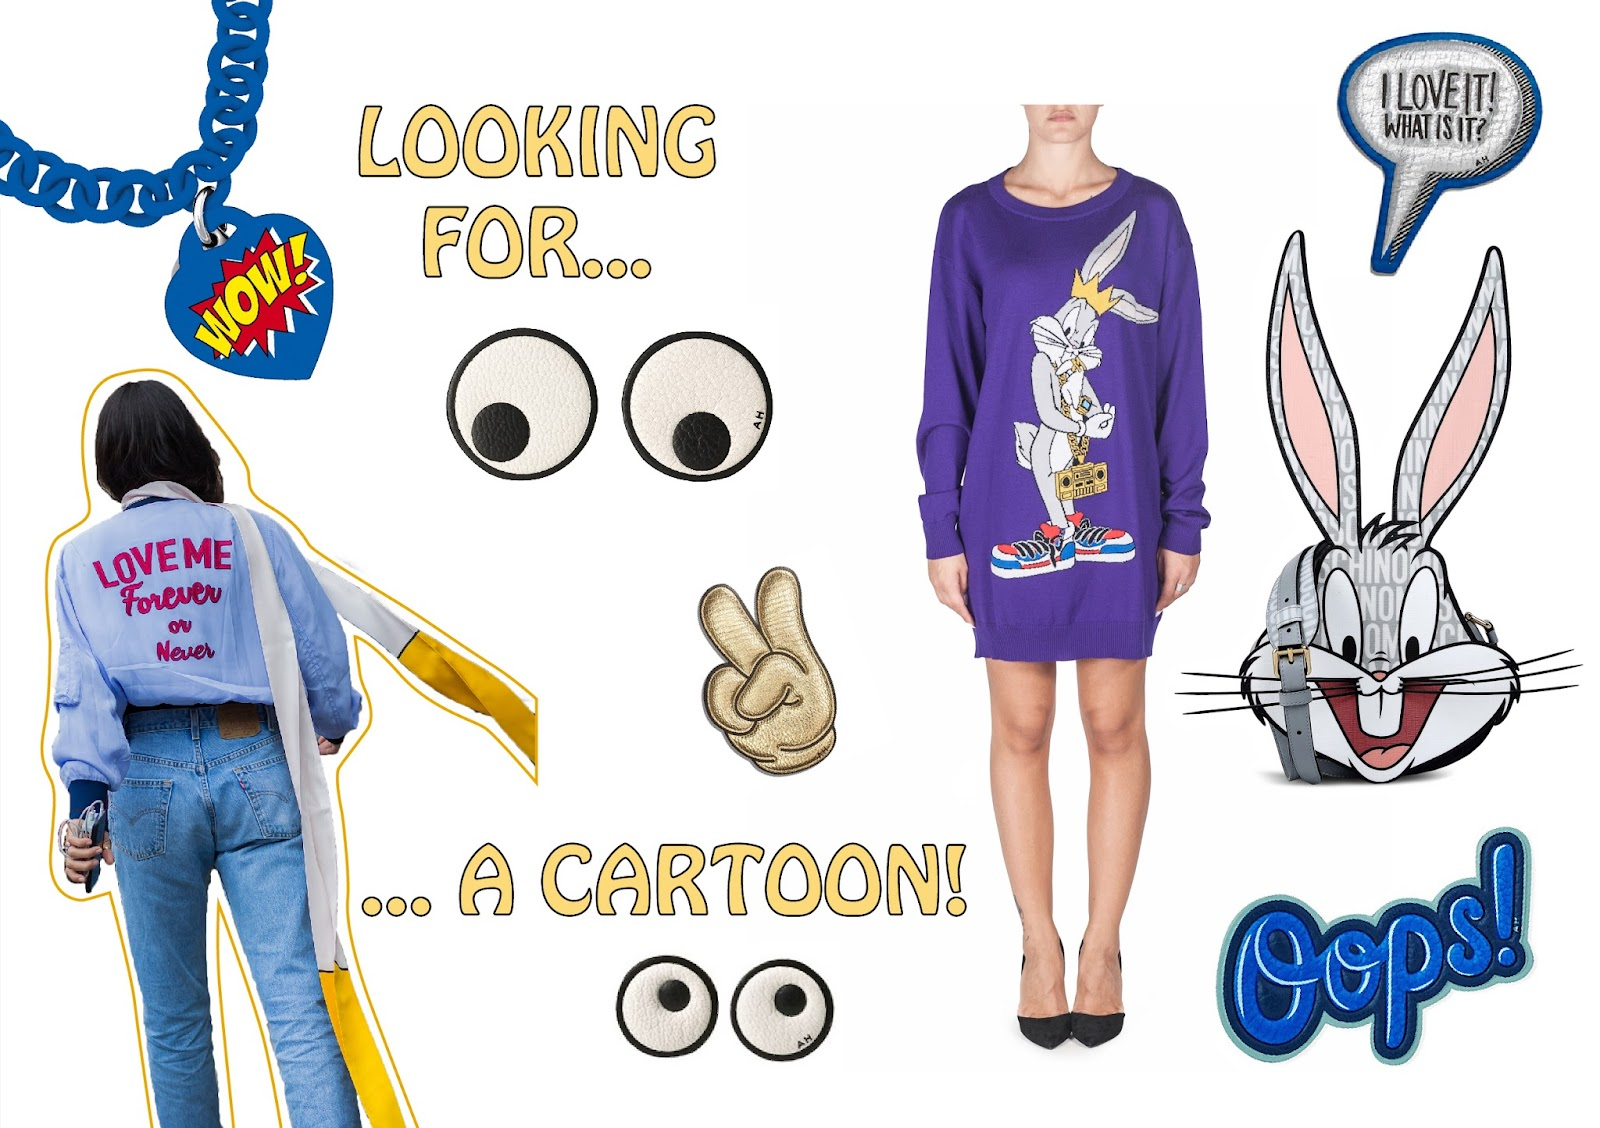 bag tshirt moschino bugs bunny looney tunes ops object